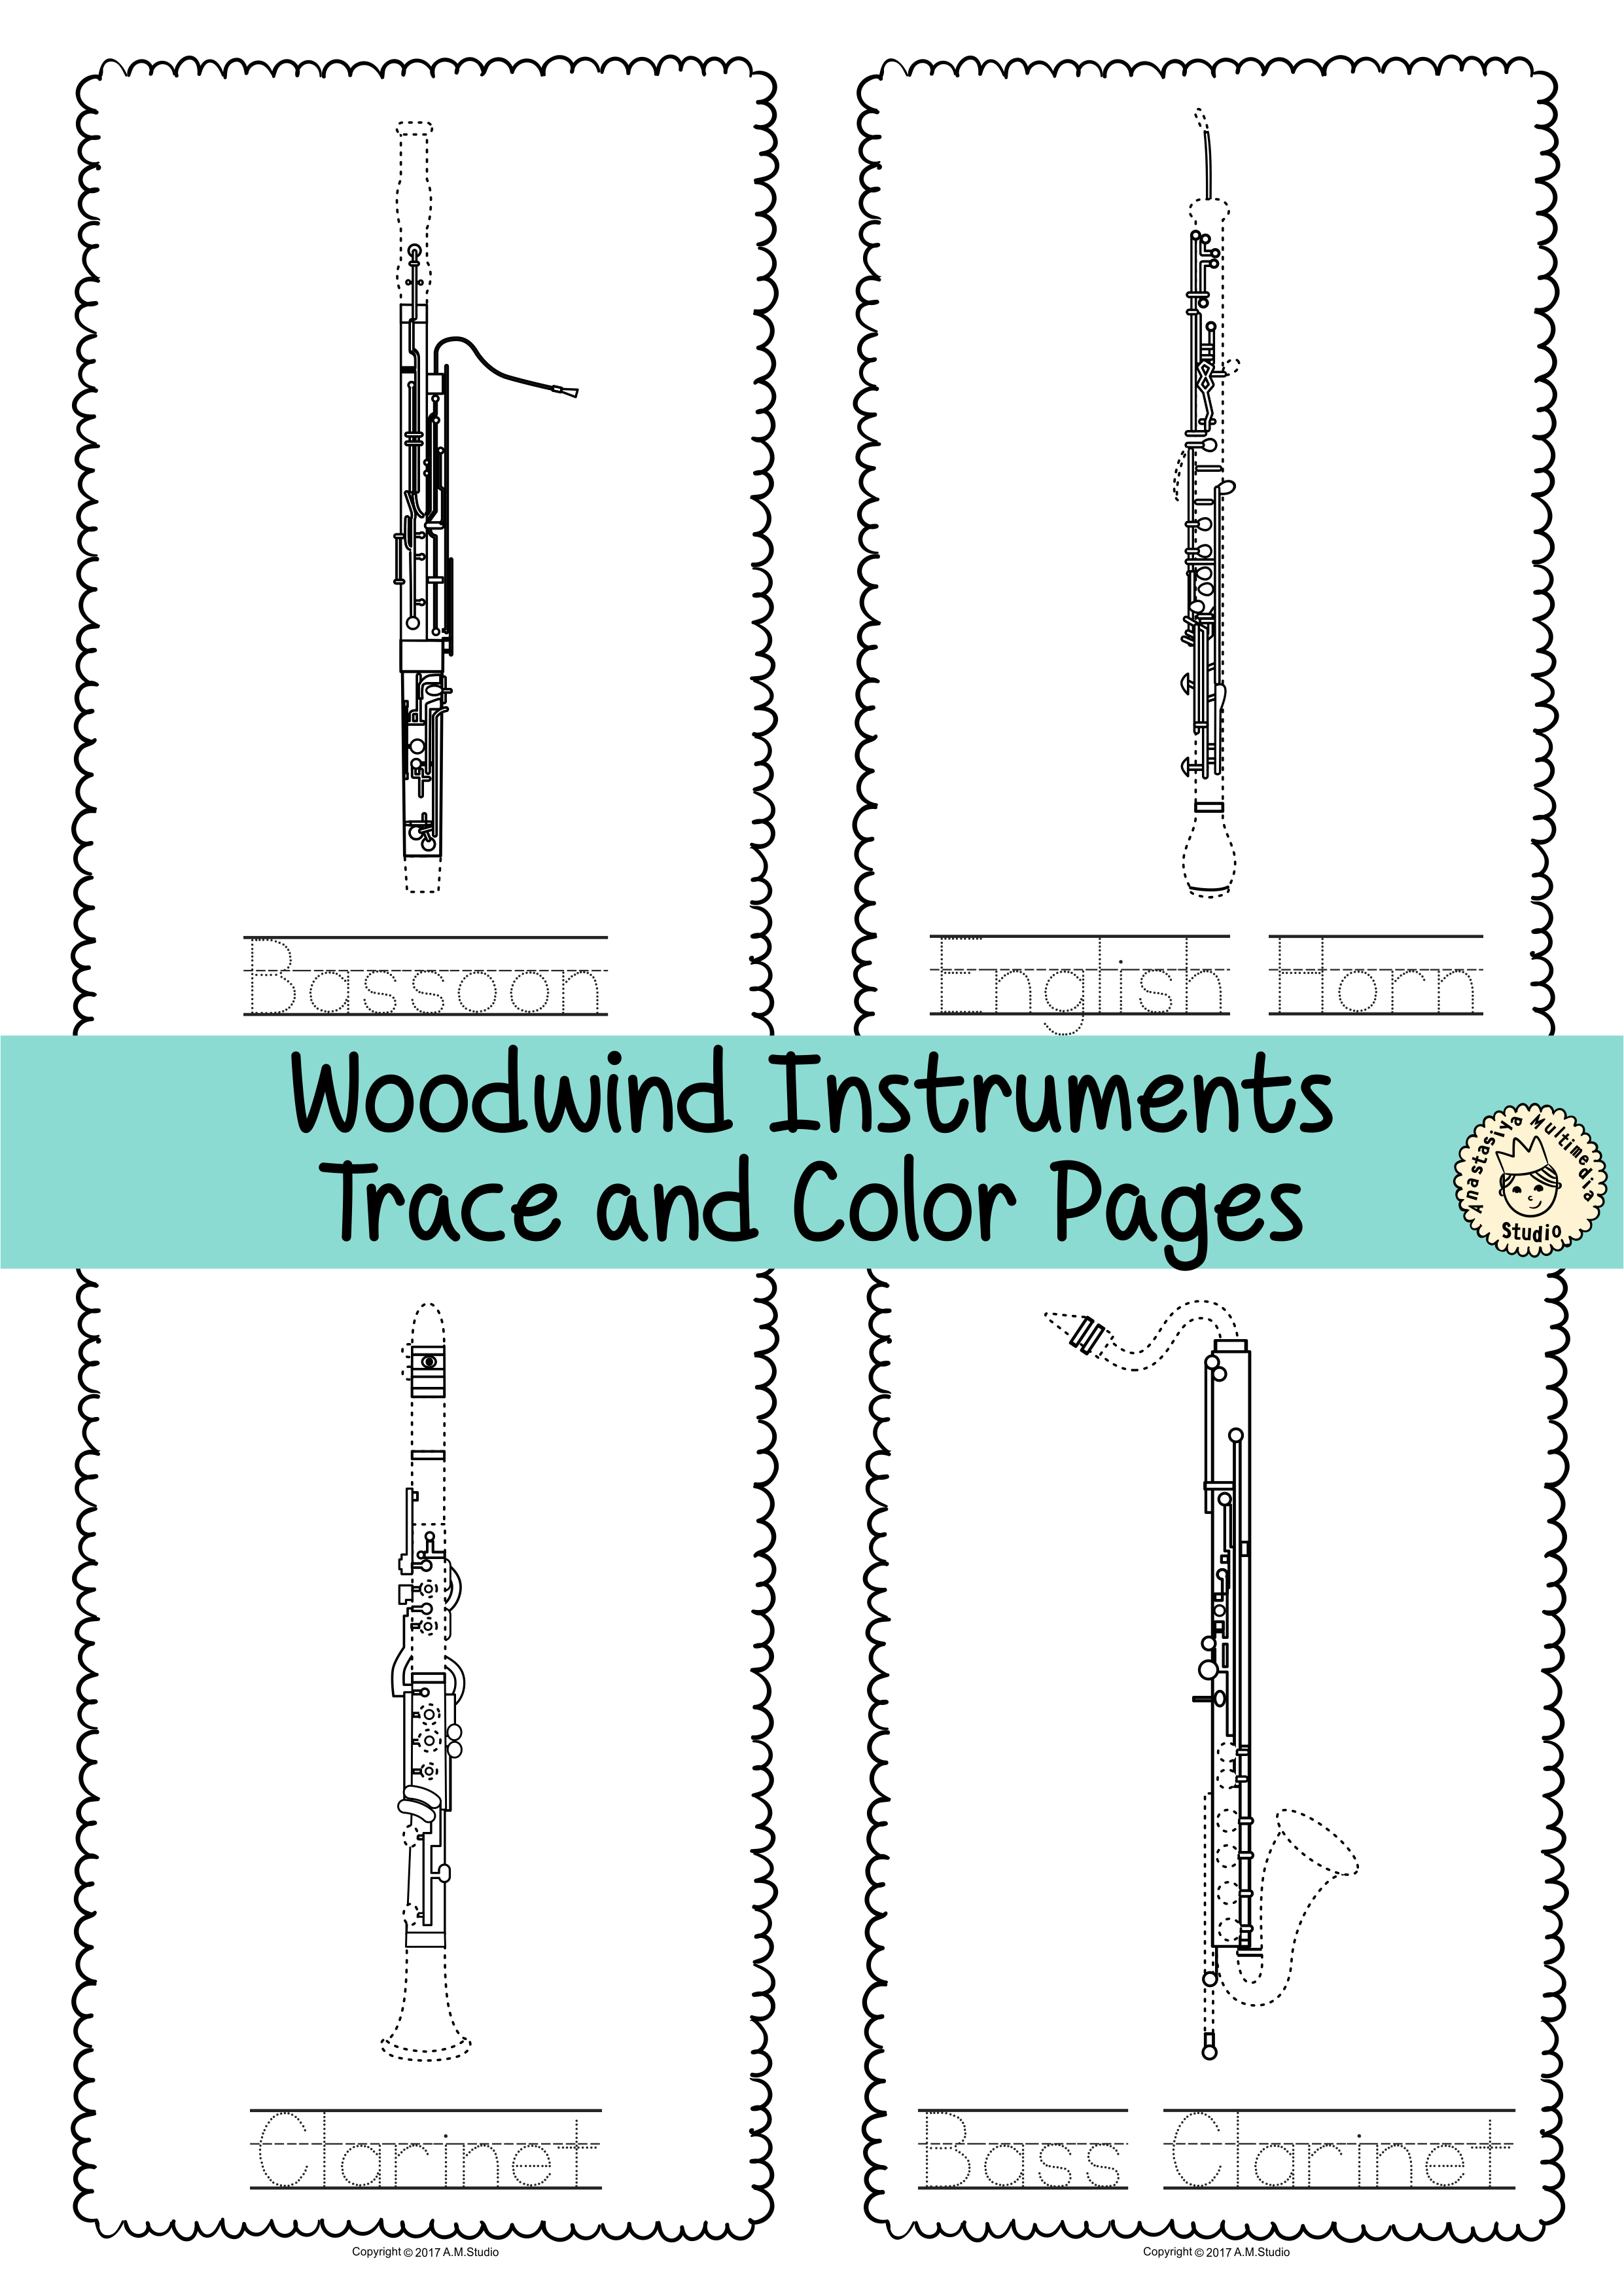 This File In PDF Form Contains 15 Woodwind Instruments Trace And Coloring Pages